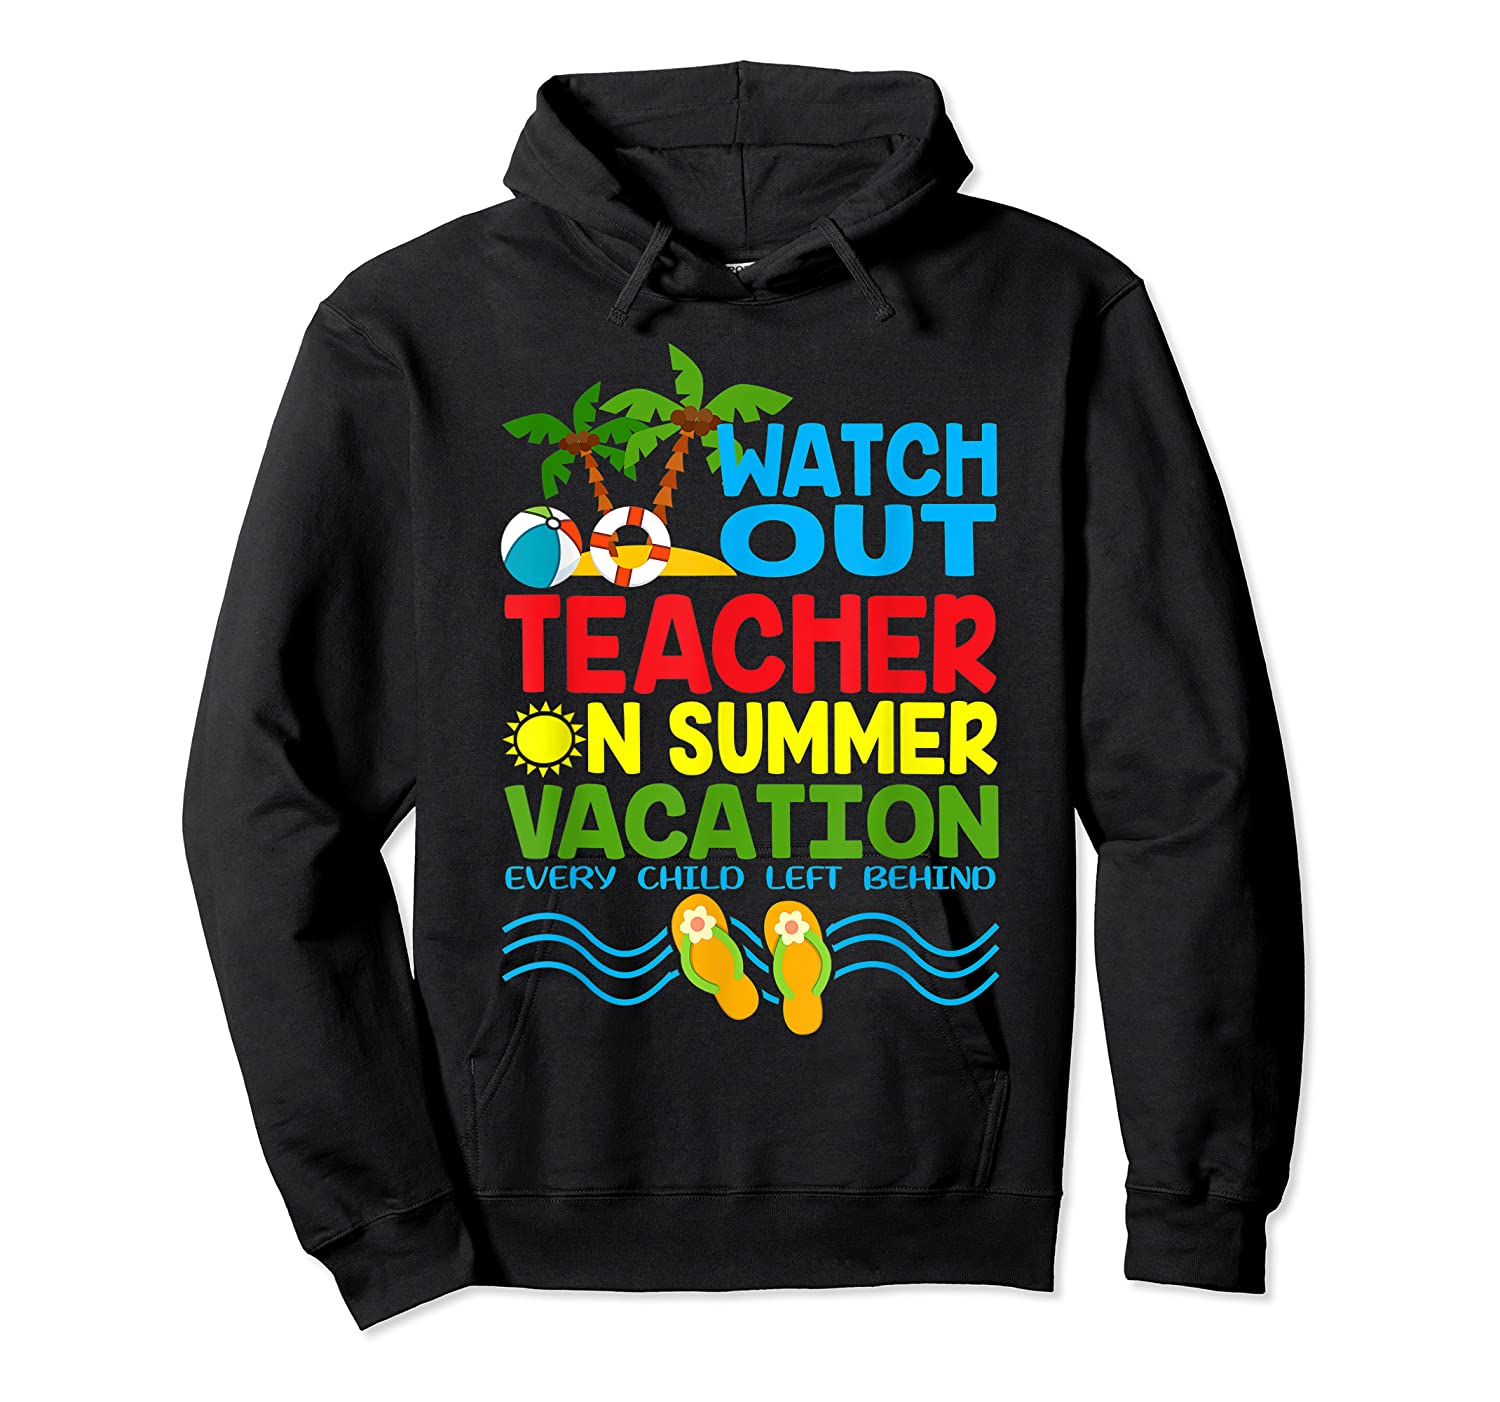 Watch Out Tea On Summer Vacation Every Child Left Behind Shirts Unisex Pullover Hoodie